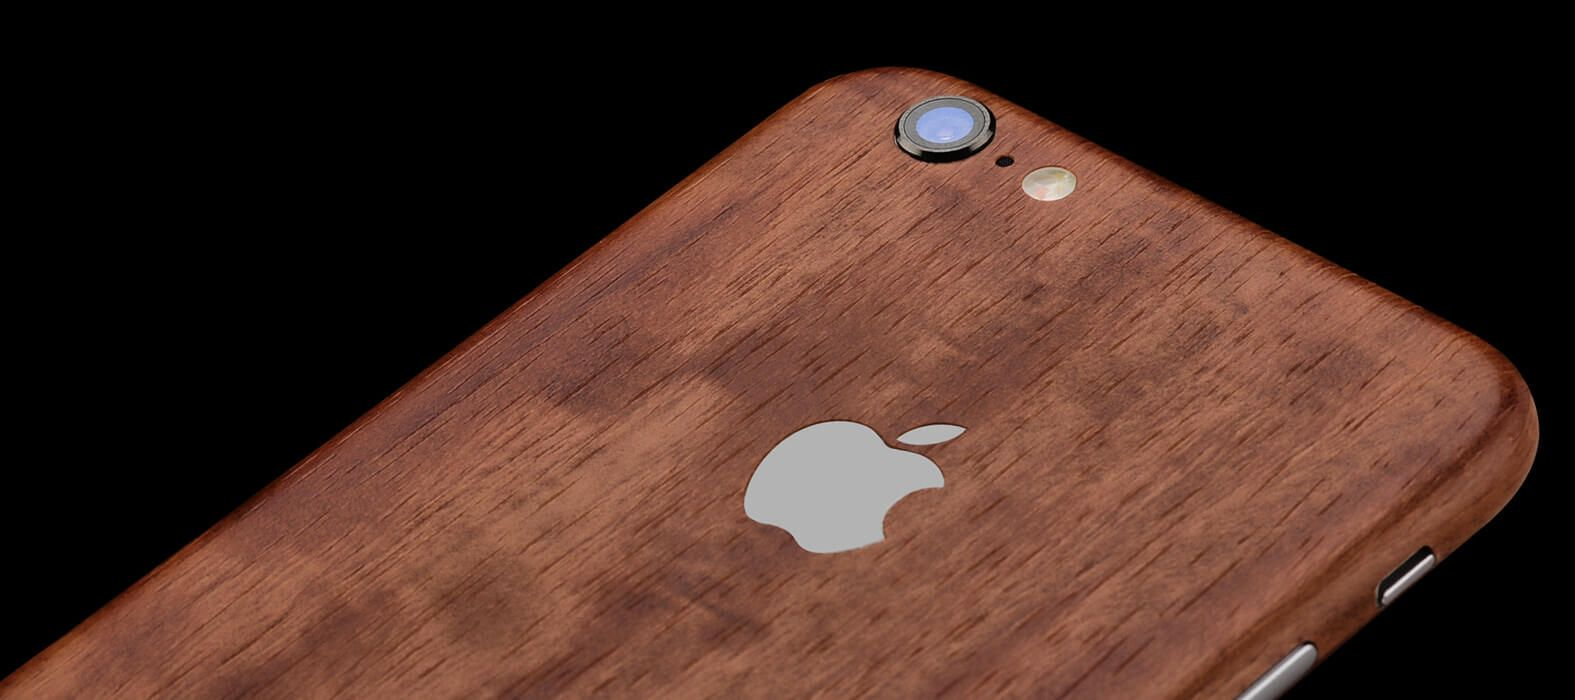 iPhone 6 Plus Skins, Wraps & decals - Teak Wood